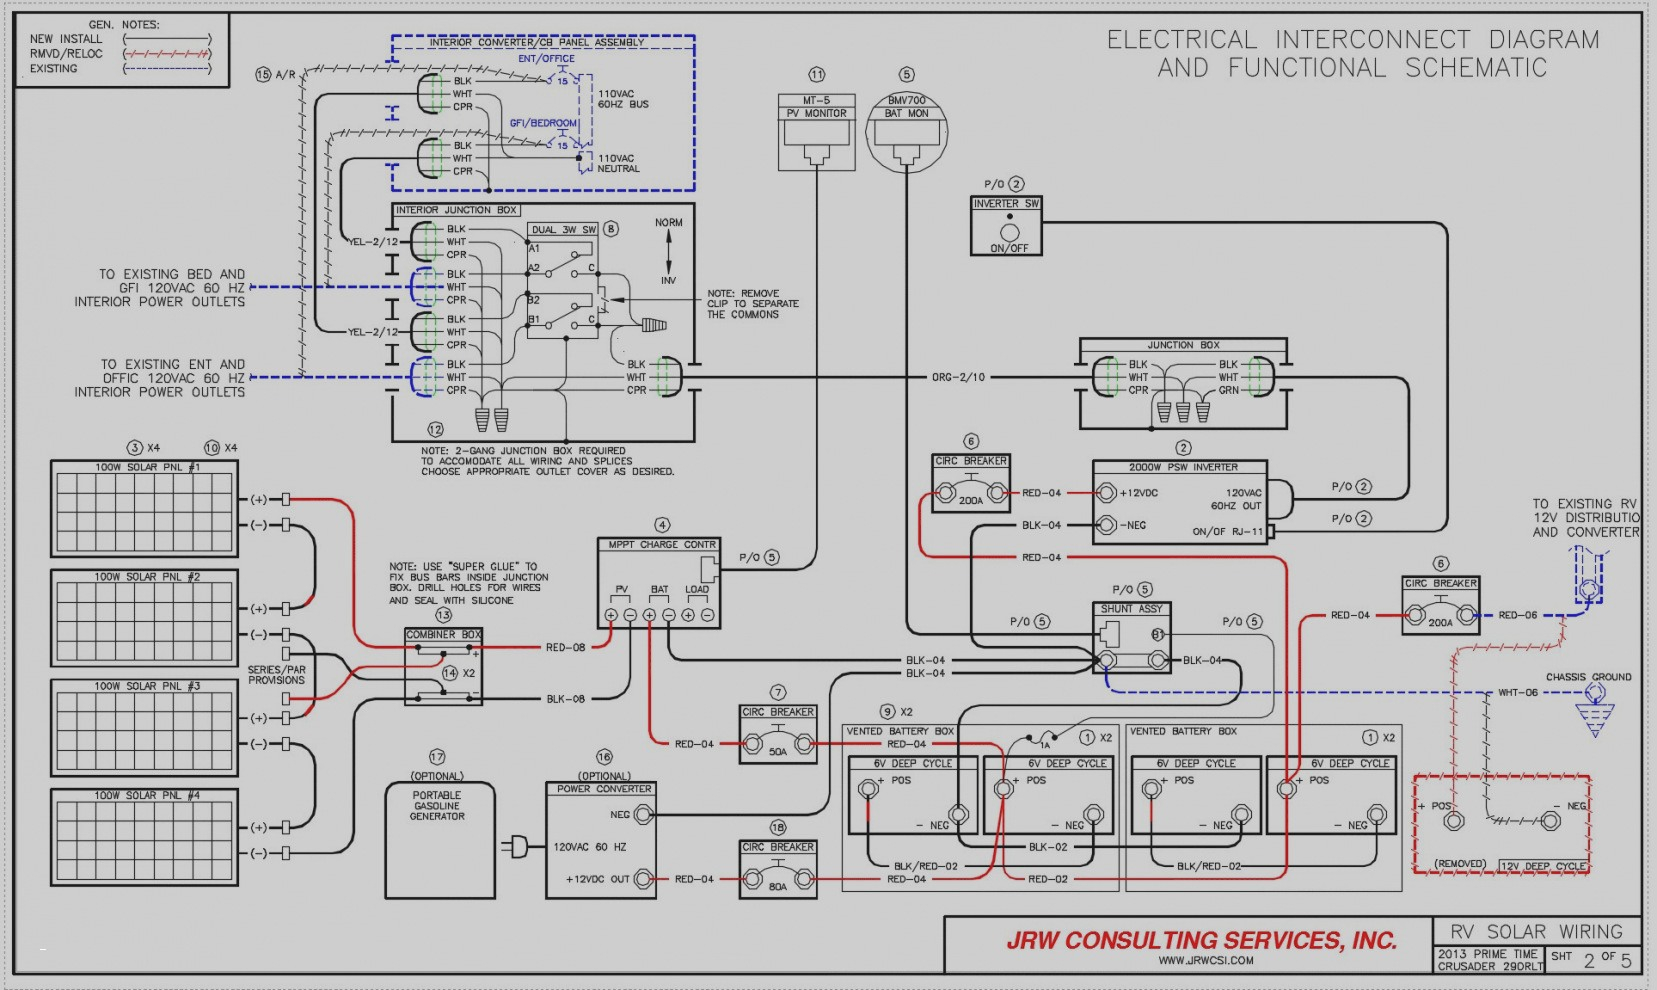 rv transfer switch wiring diagram Download-Wire Diagram Creator Inspirational 12 Wonderful Wiring Diagram Od Rv Park Wiring Diagrams Draw 20-t